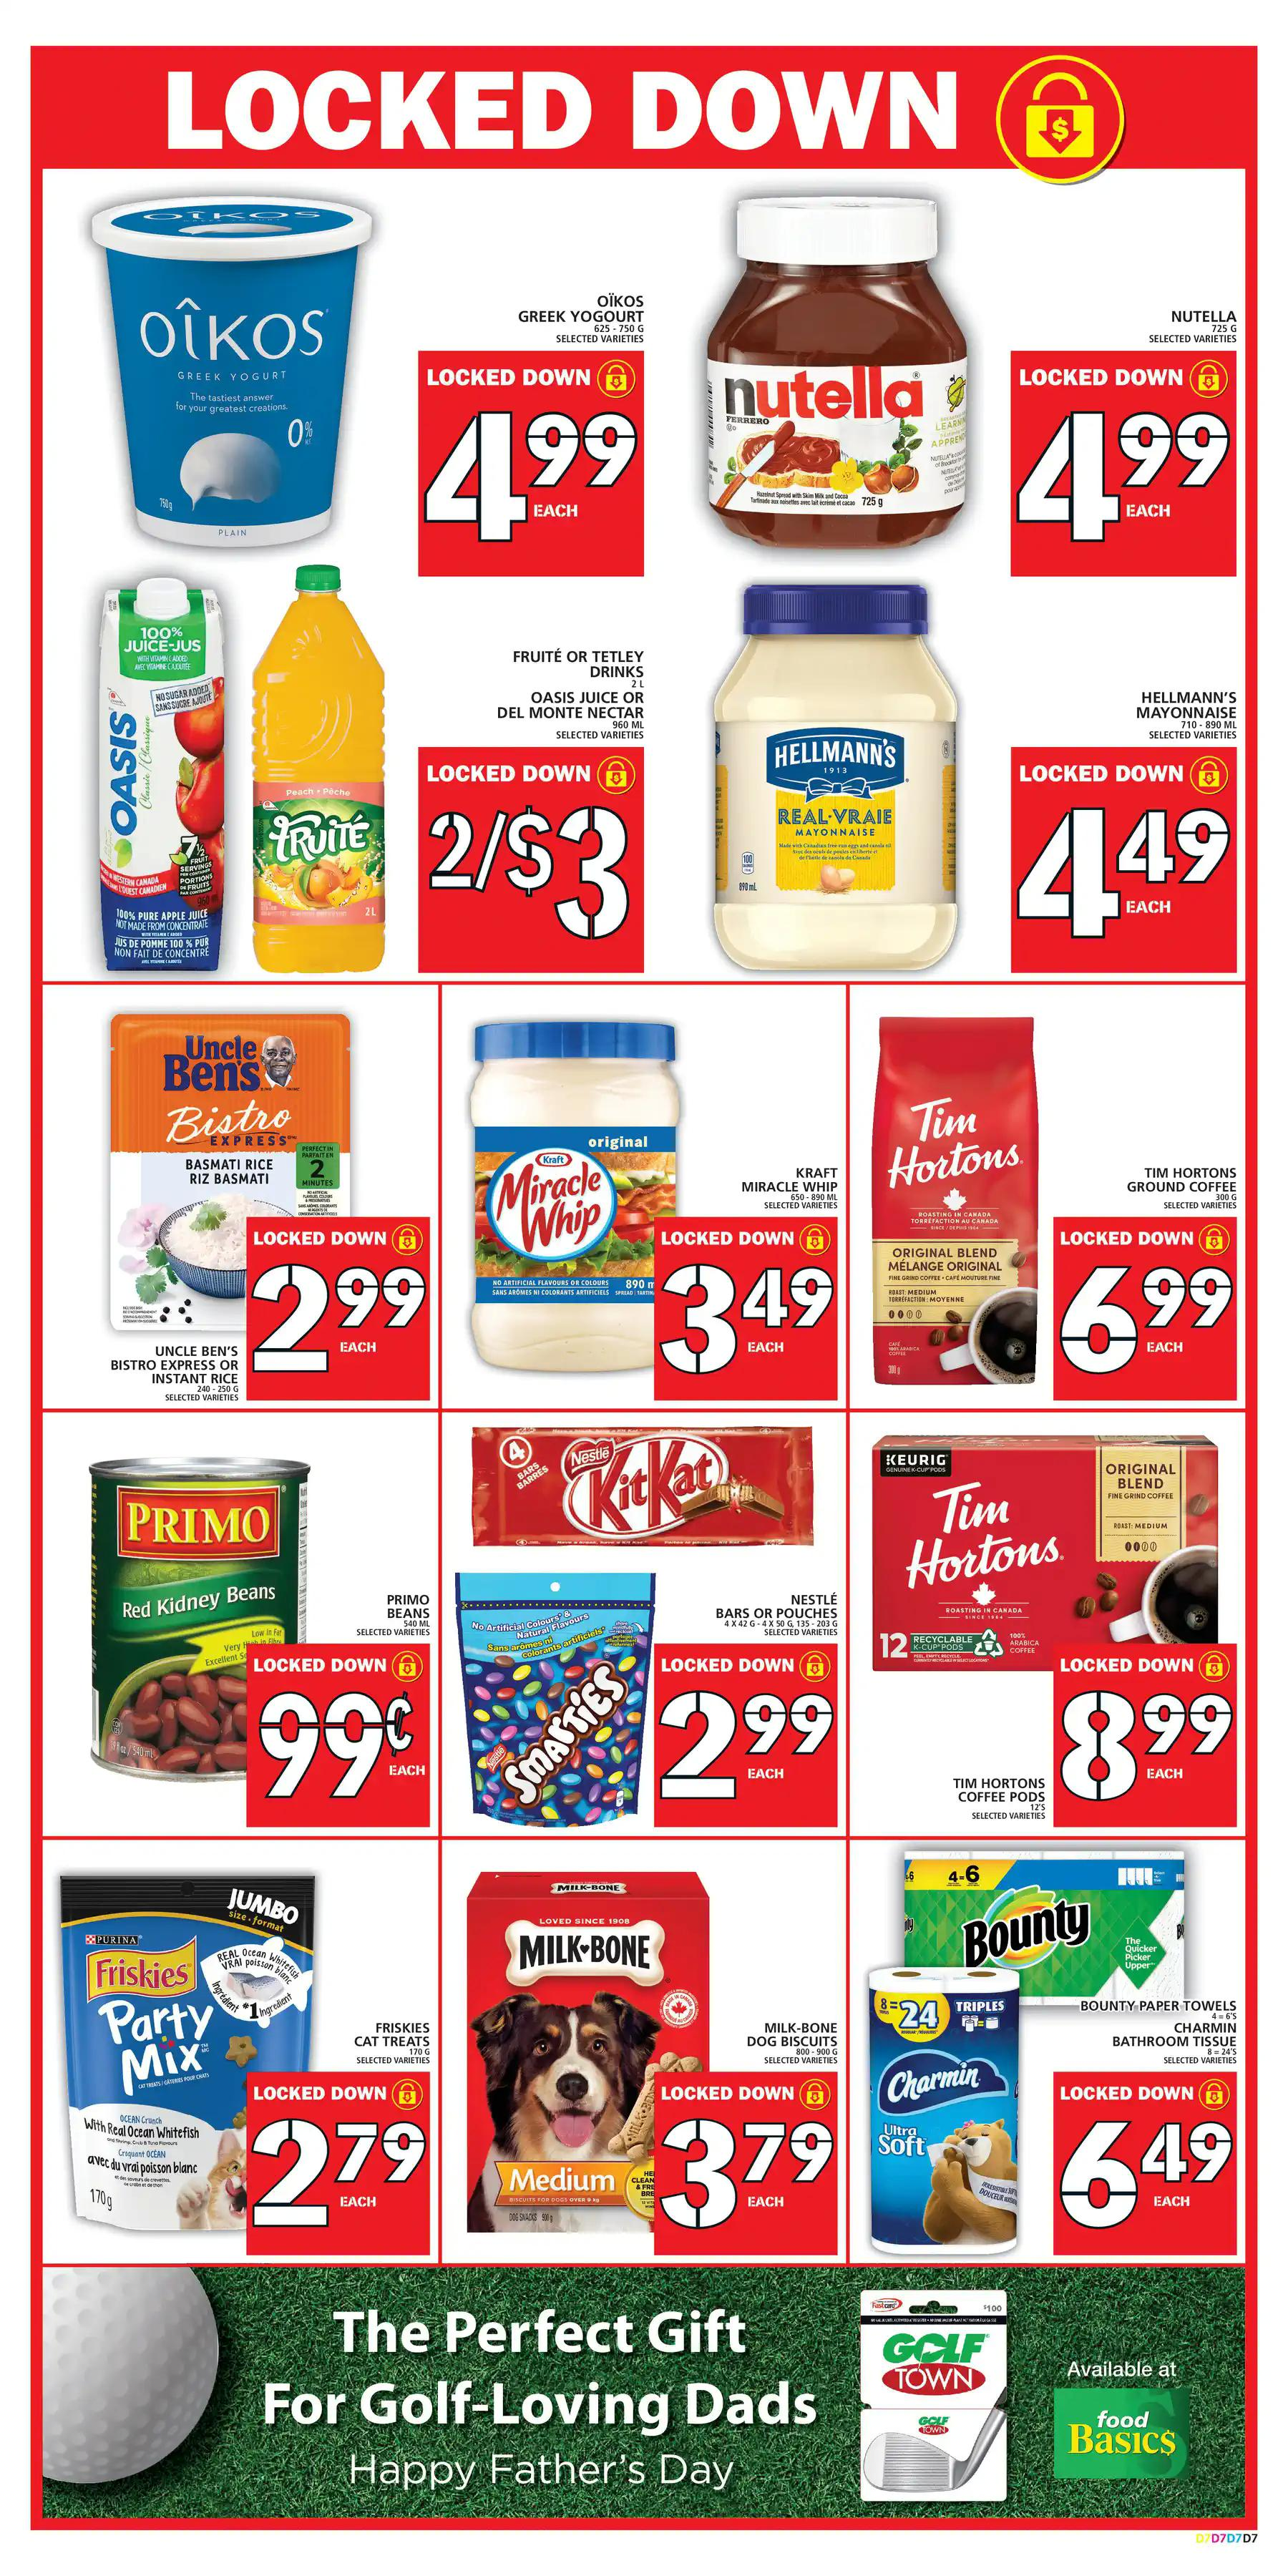 Food Basics - Weekly Flyer Specials - Page 10